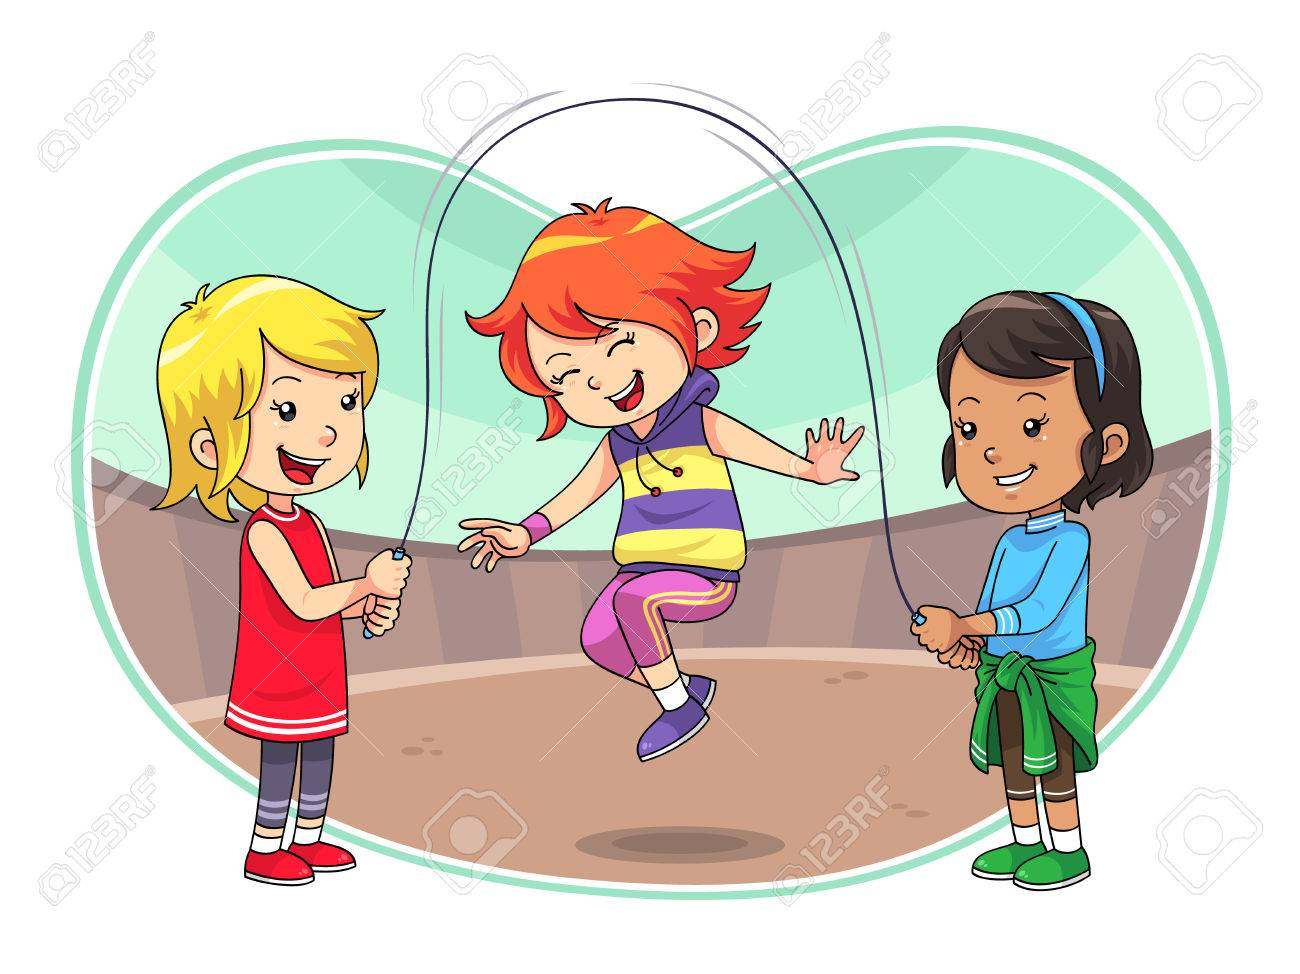 Skipping Jump Play A group of children playing skipping jump Stock Vector - 22719357